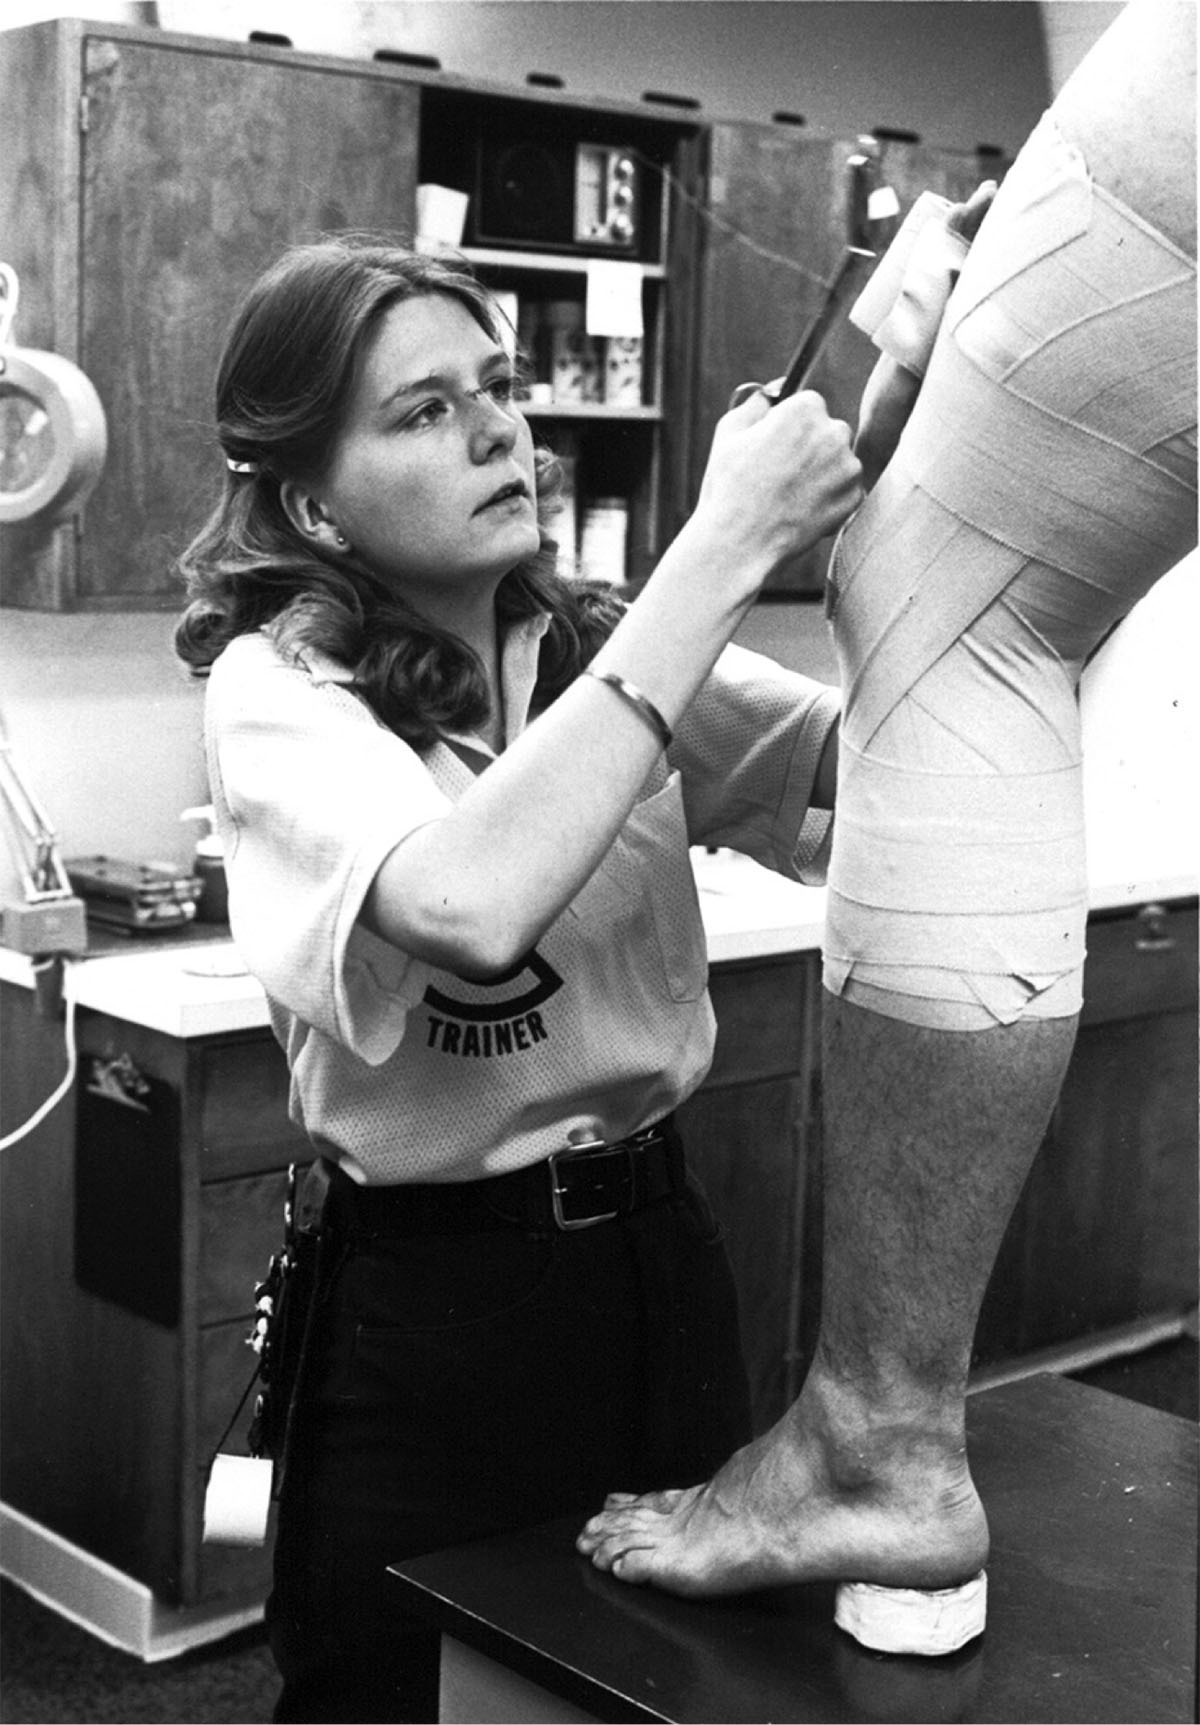 Pictured is athletic trainer, Barb Jenneman taping a football player's leg in 1979. Barb was trainer for the men's football team, an example of a possible career for a Kinesiology student.